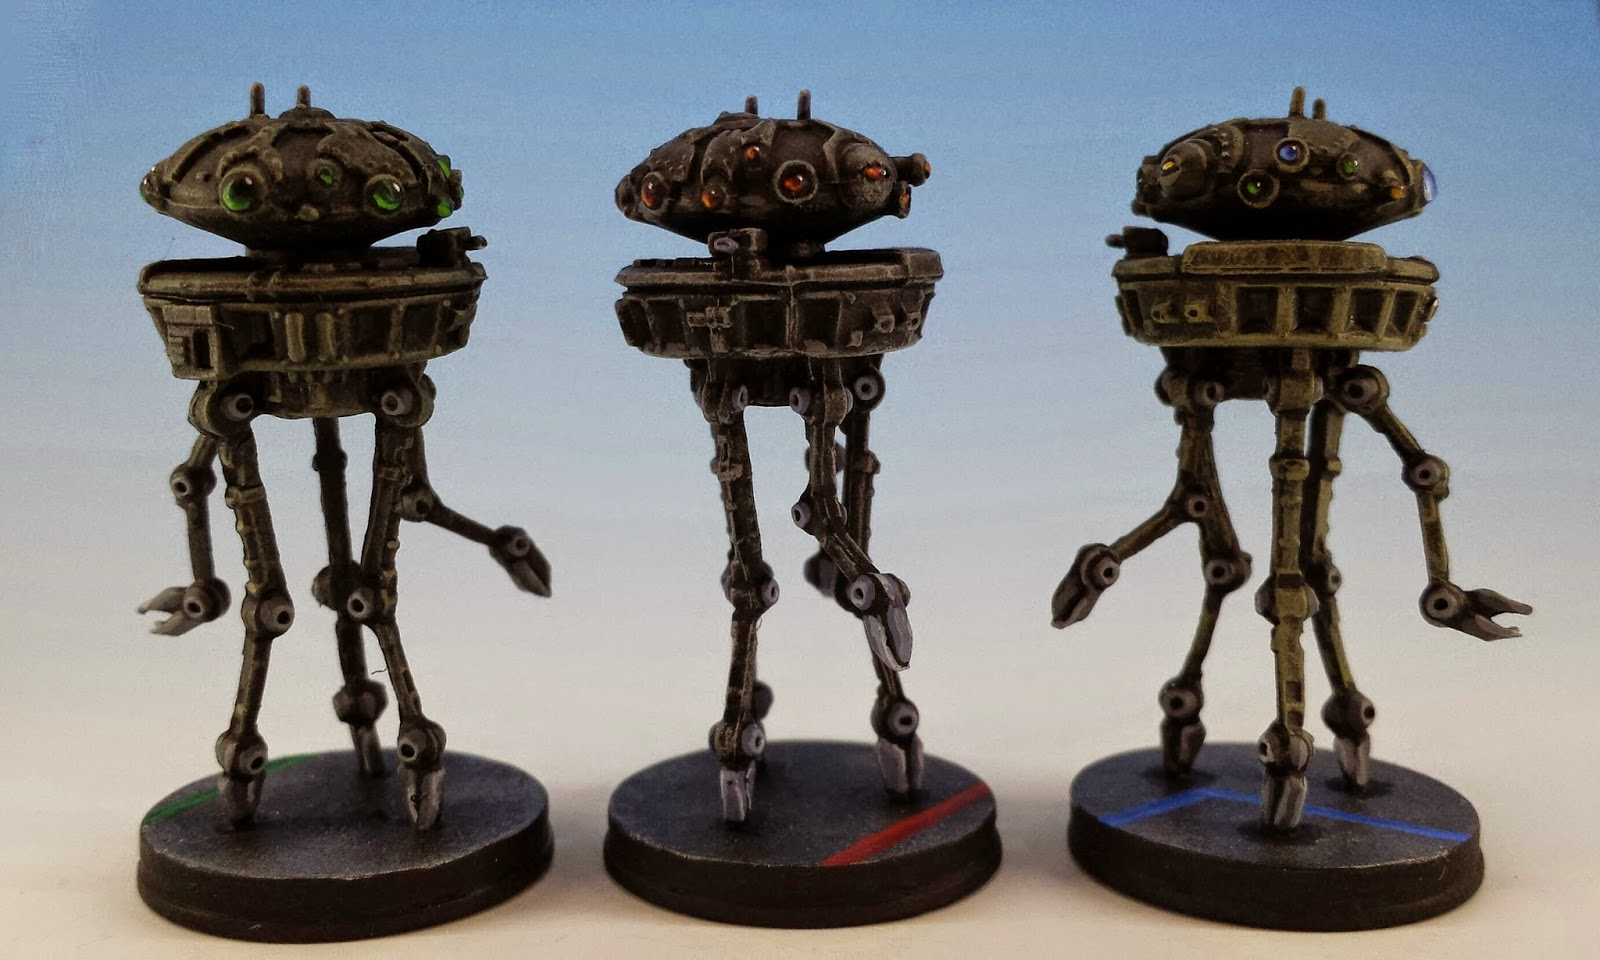 Probe Droid, Fantasy Flight Games (2014, sculpted by Benjamin Maillet, painted by M. Sullivan) (rear)